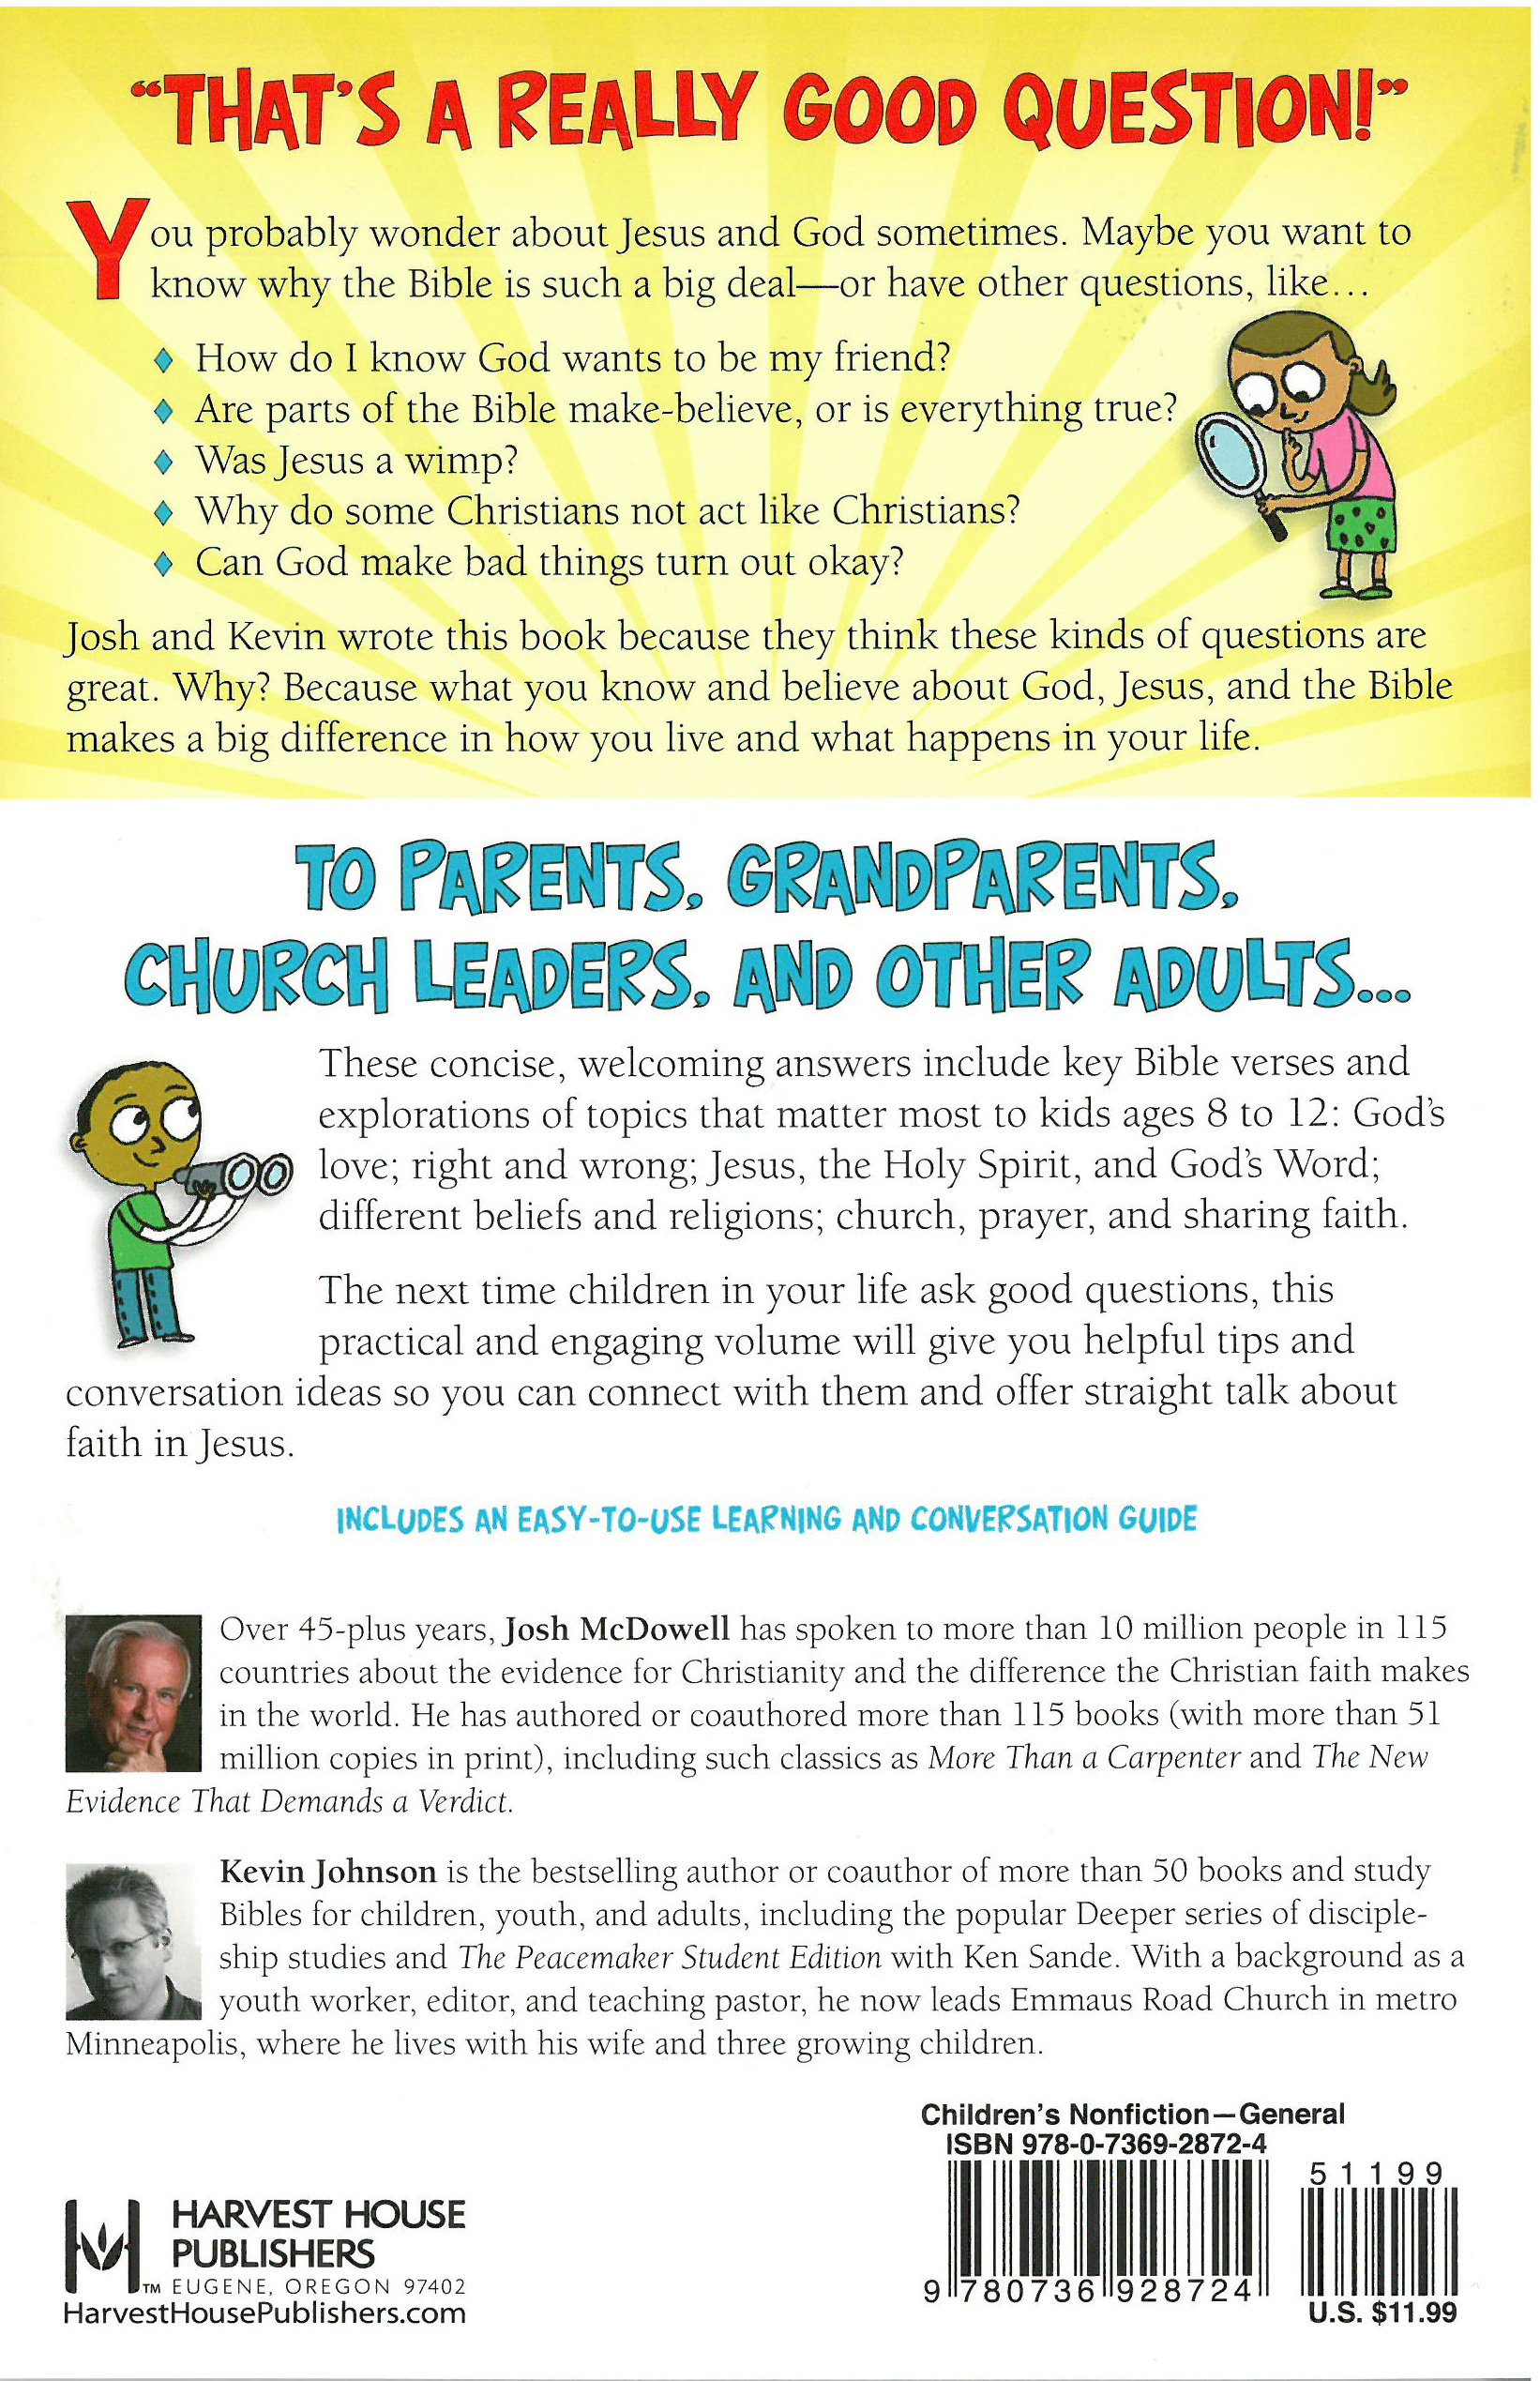 301 Bible Trivia Questions & Answers (Fun Quiz for Kids)